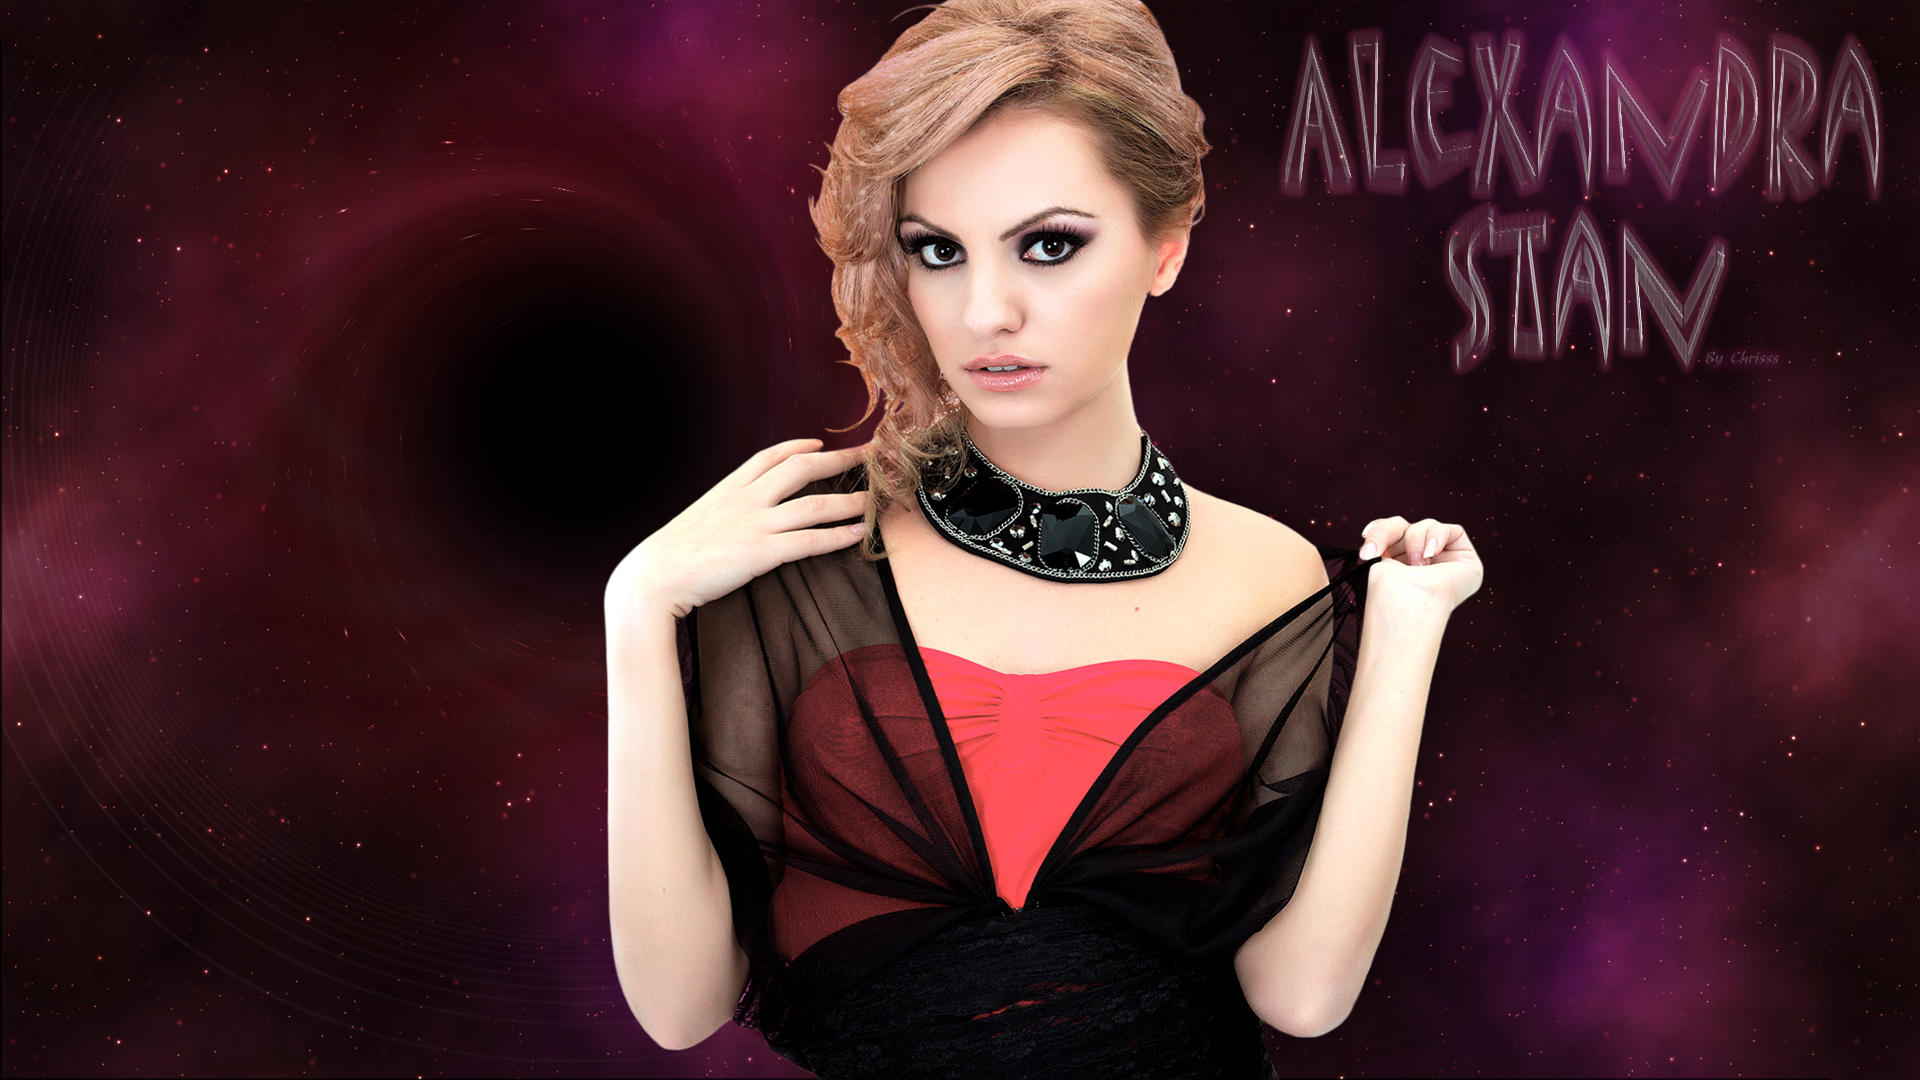 Alexandra Stan - Images Hot